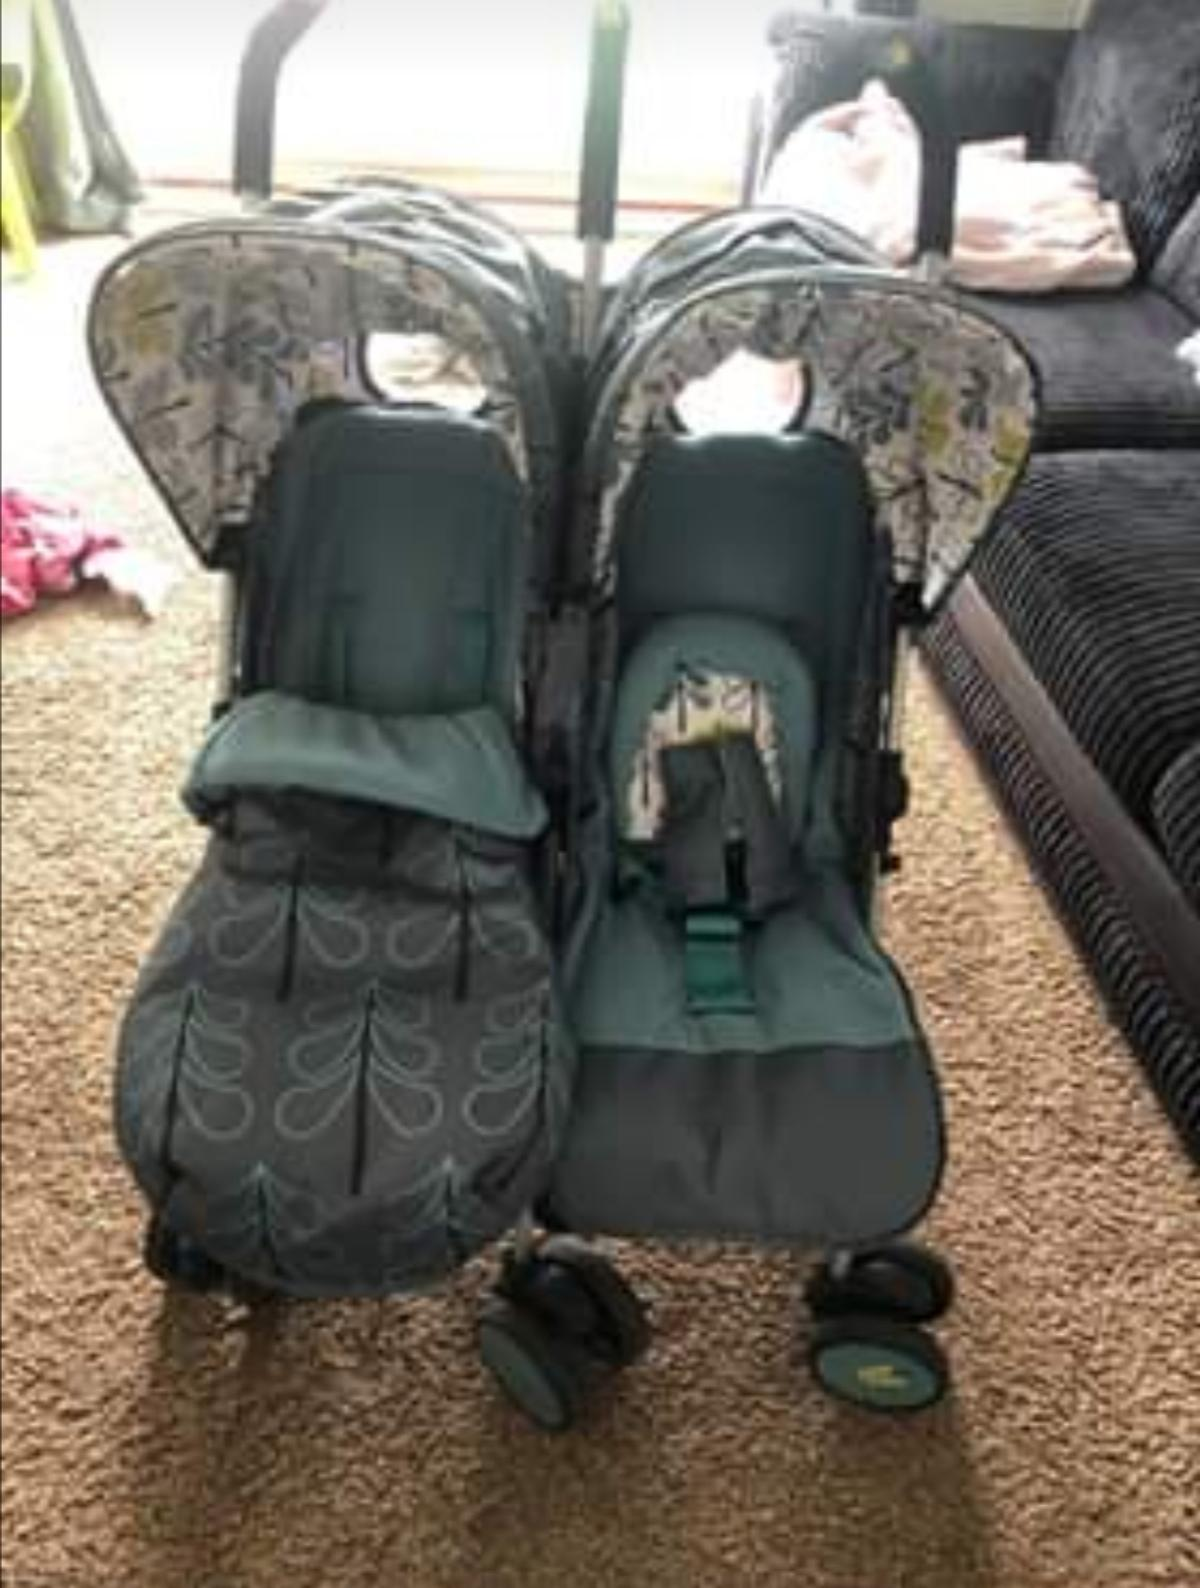 *For sale* Cosatto double pram, only used for about 4 months. In very good clean condition!! Comes with raincover, only issue is that one of the footmuffs lost its zip. So one side has no footmuff. Has pockets in the hood for ipads. COLLECTION ONLY from Ruardean Hill, £100.